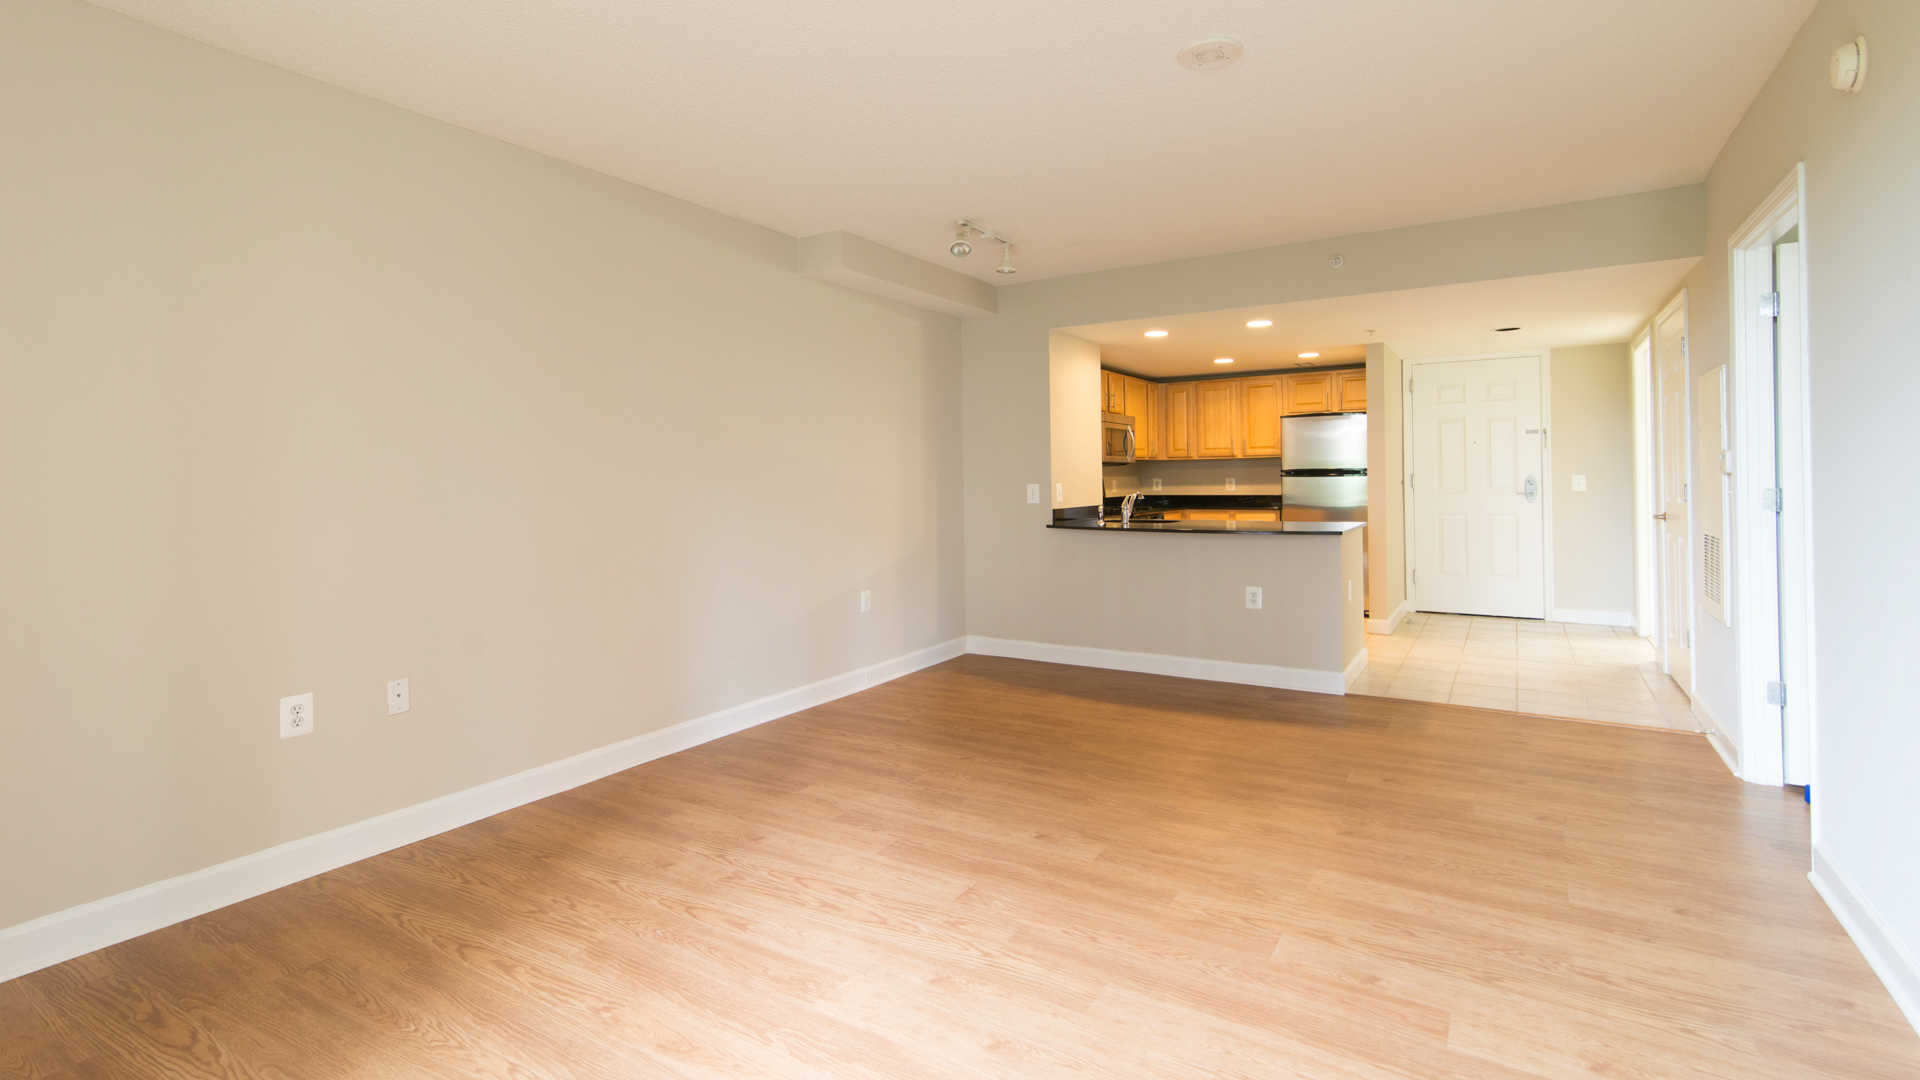 Dining Room and Kitchen with Hard Surface Flooring